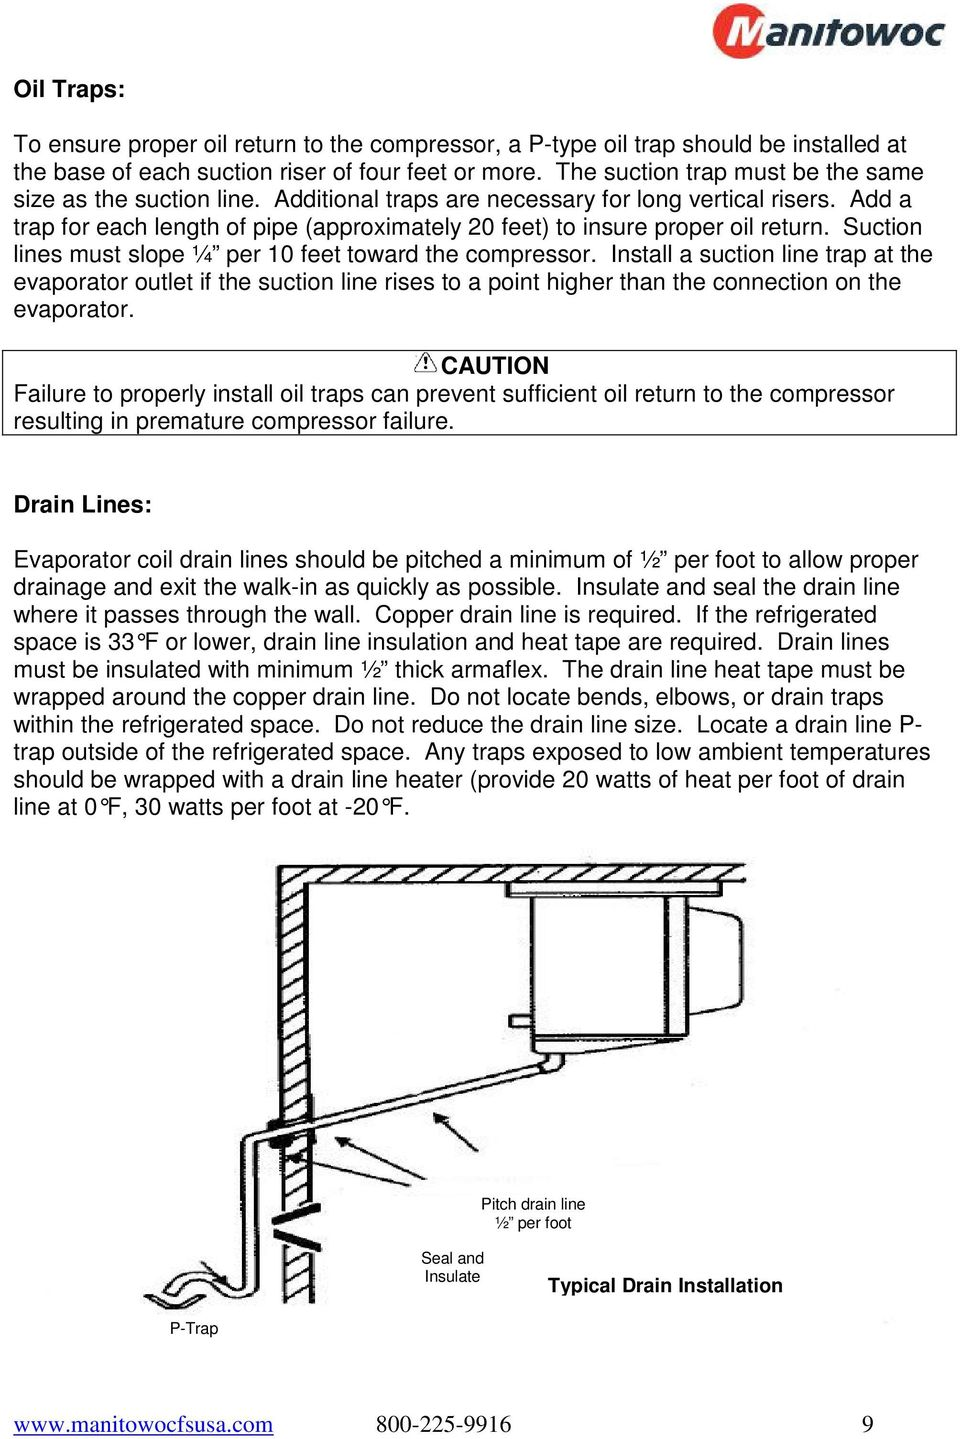 Refrigeration System Installation Operation Manual Pdf Typical Wiring Diagrams Evaporator Add A Trap For Each Length Of Pipe Approximately 20 Feet To Insure Proper